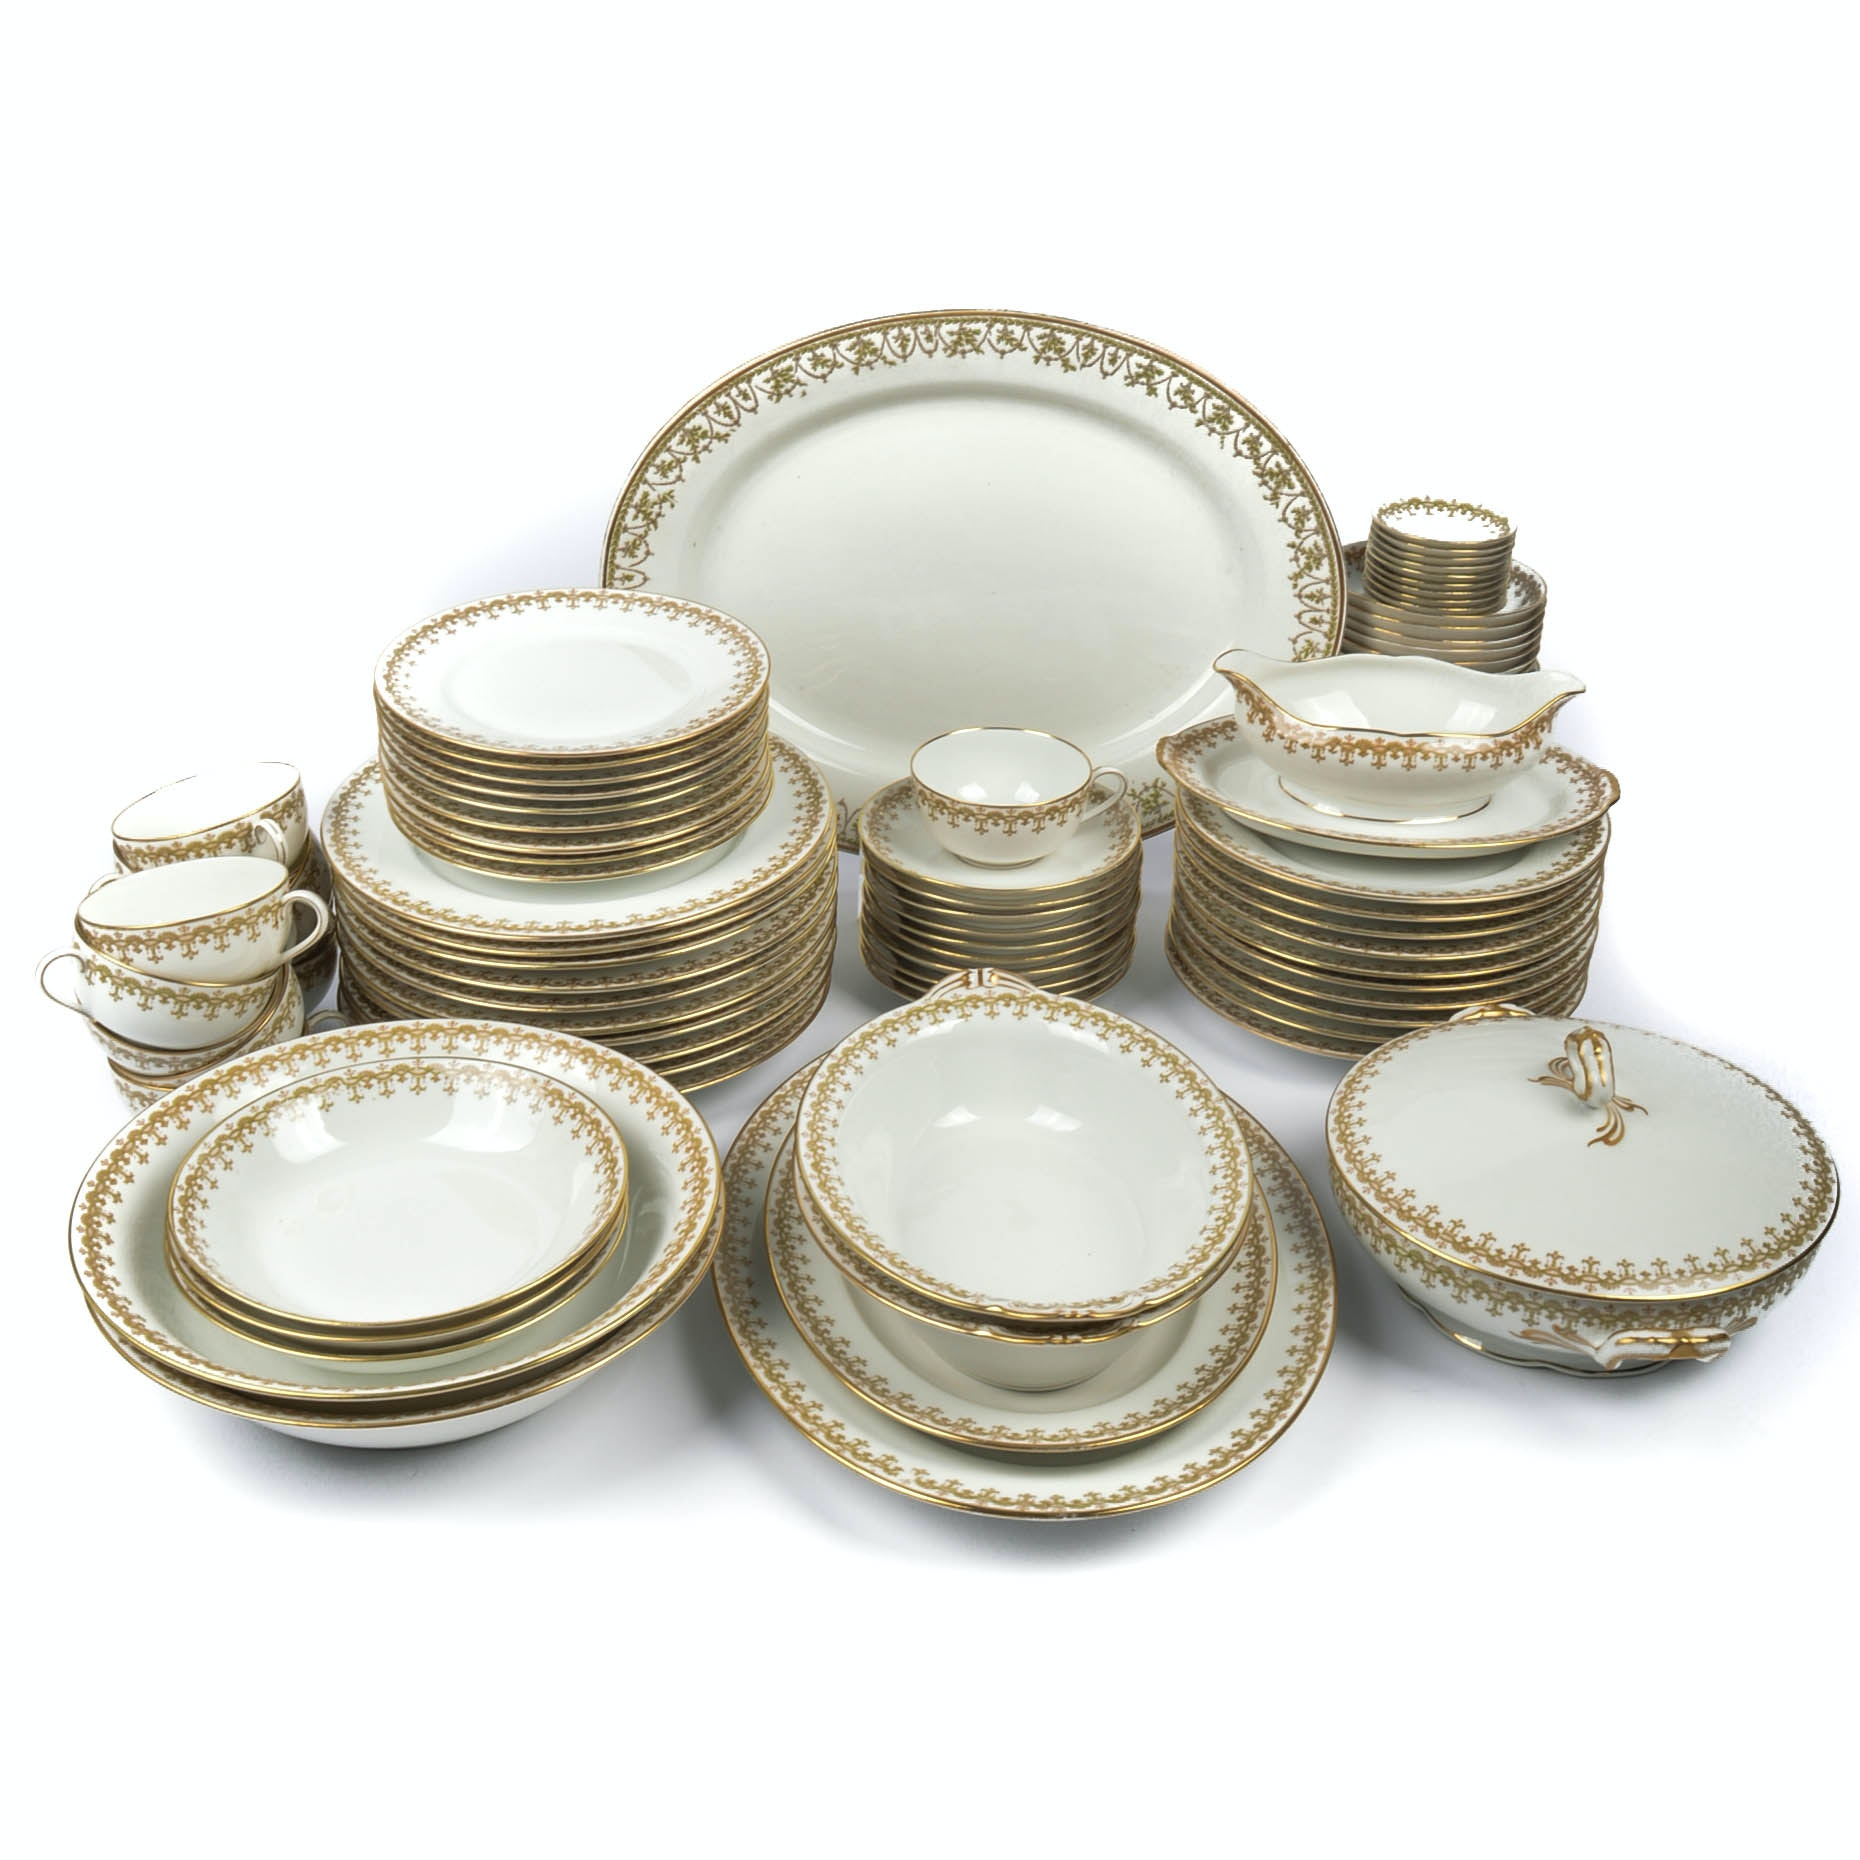 Generous Set of Charles Ahrenfeldt Limoges France China ...  sc 1 st  EBTH.com & Generous Set of Charles Ahrenfeldt Limoges France China : EBTH